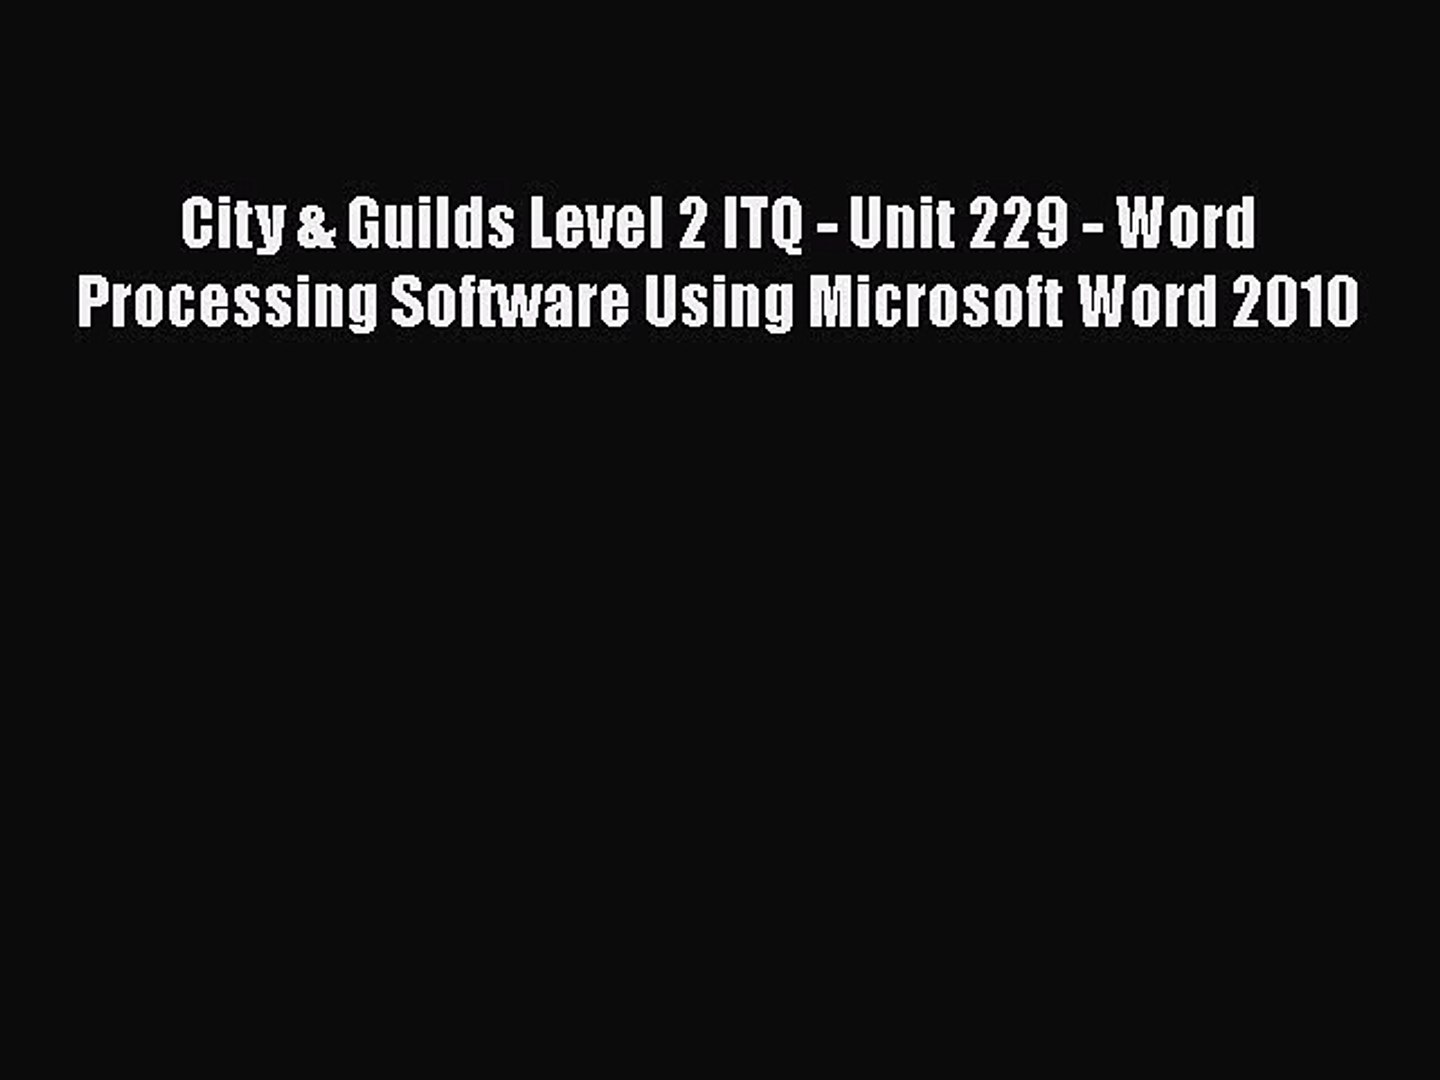 [PDF] City & Guilds Level 2 ITQ - Unit 229 - Word Processing Software Using Microsoft Word